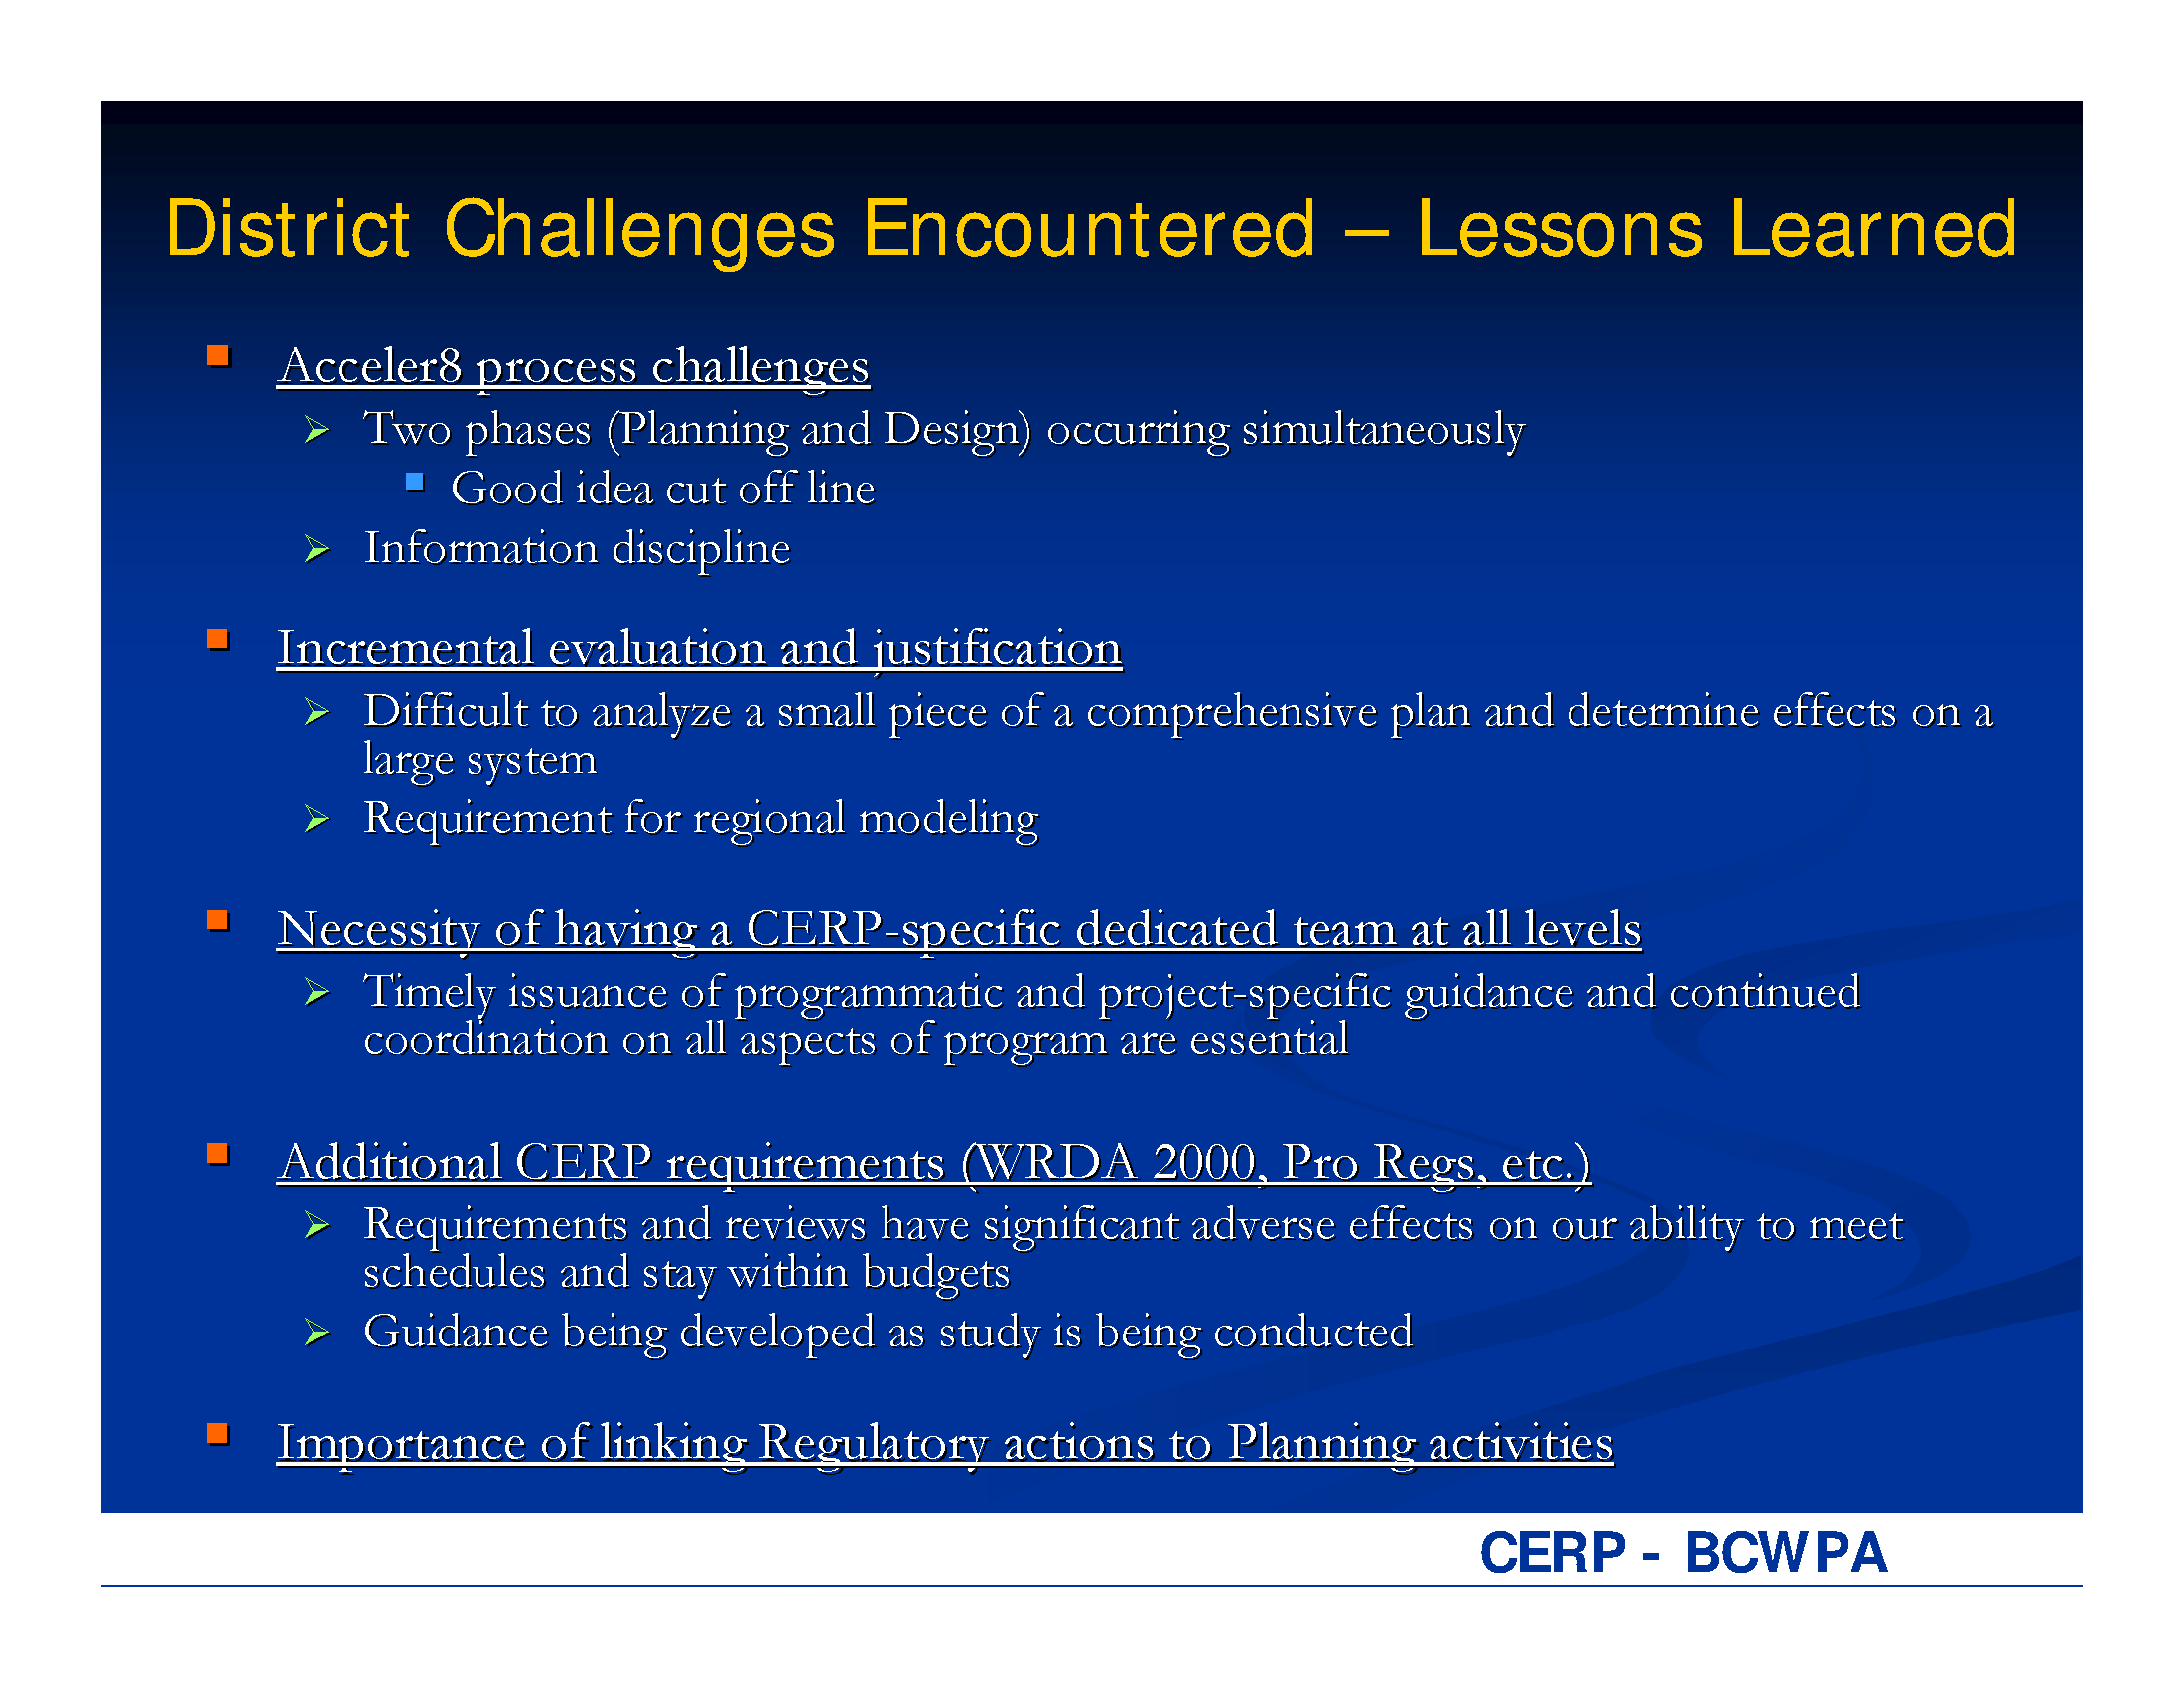 District Challenges Encountered Lessons Learned Project Management Reports Usace Digital Library